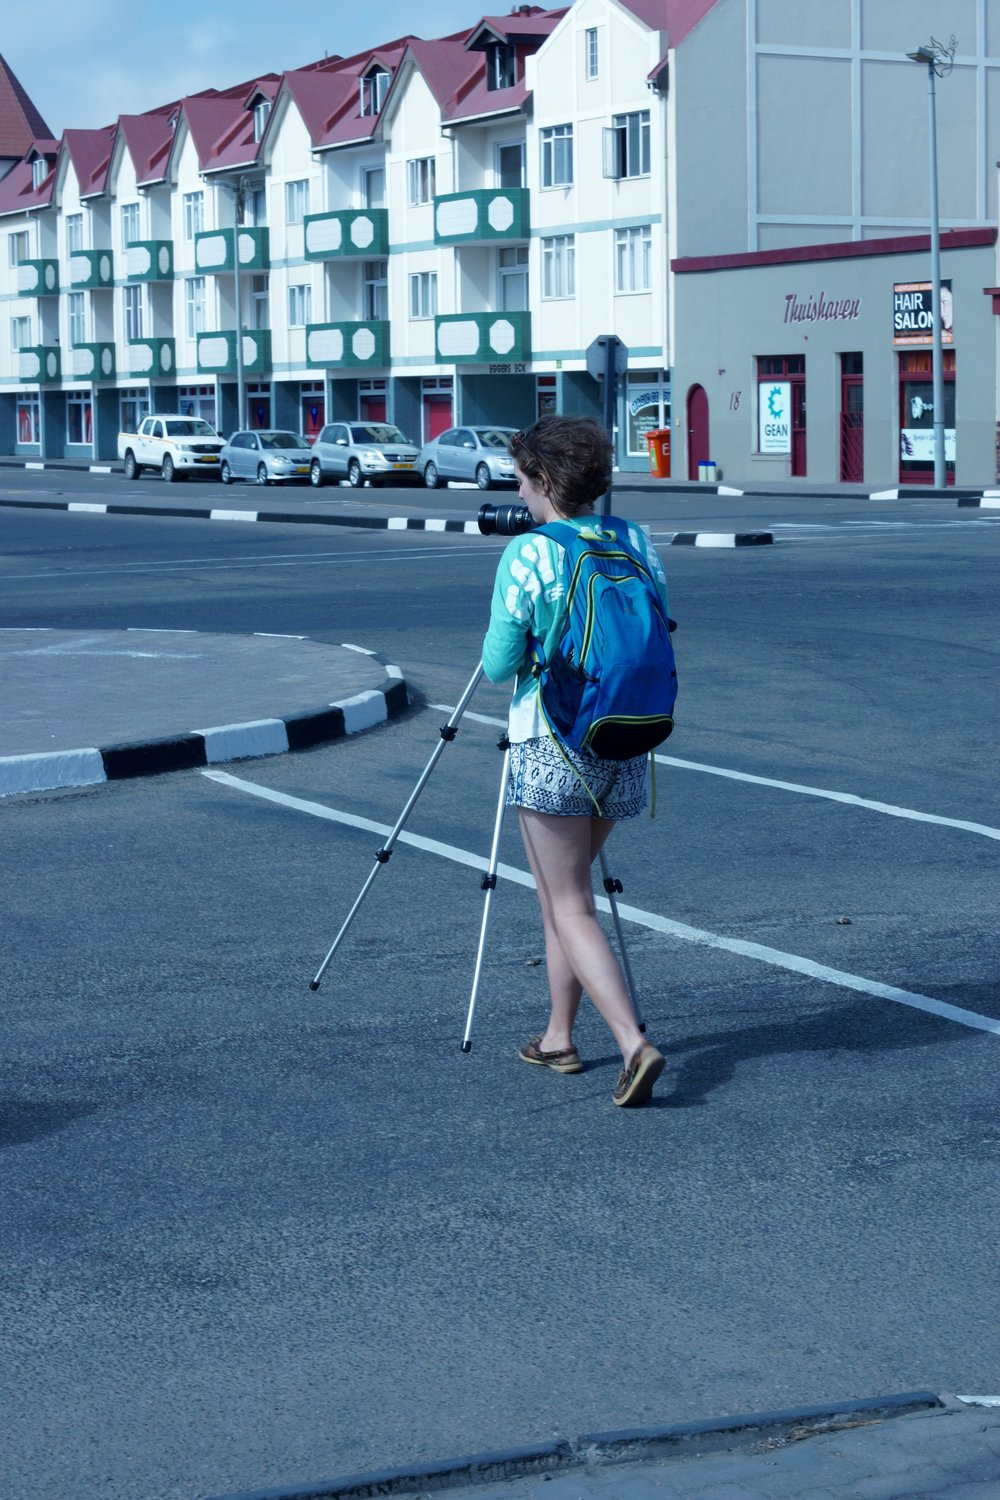 Oly filming in the town of Swakopmund.